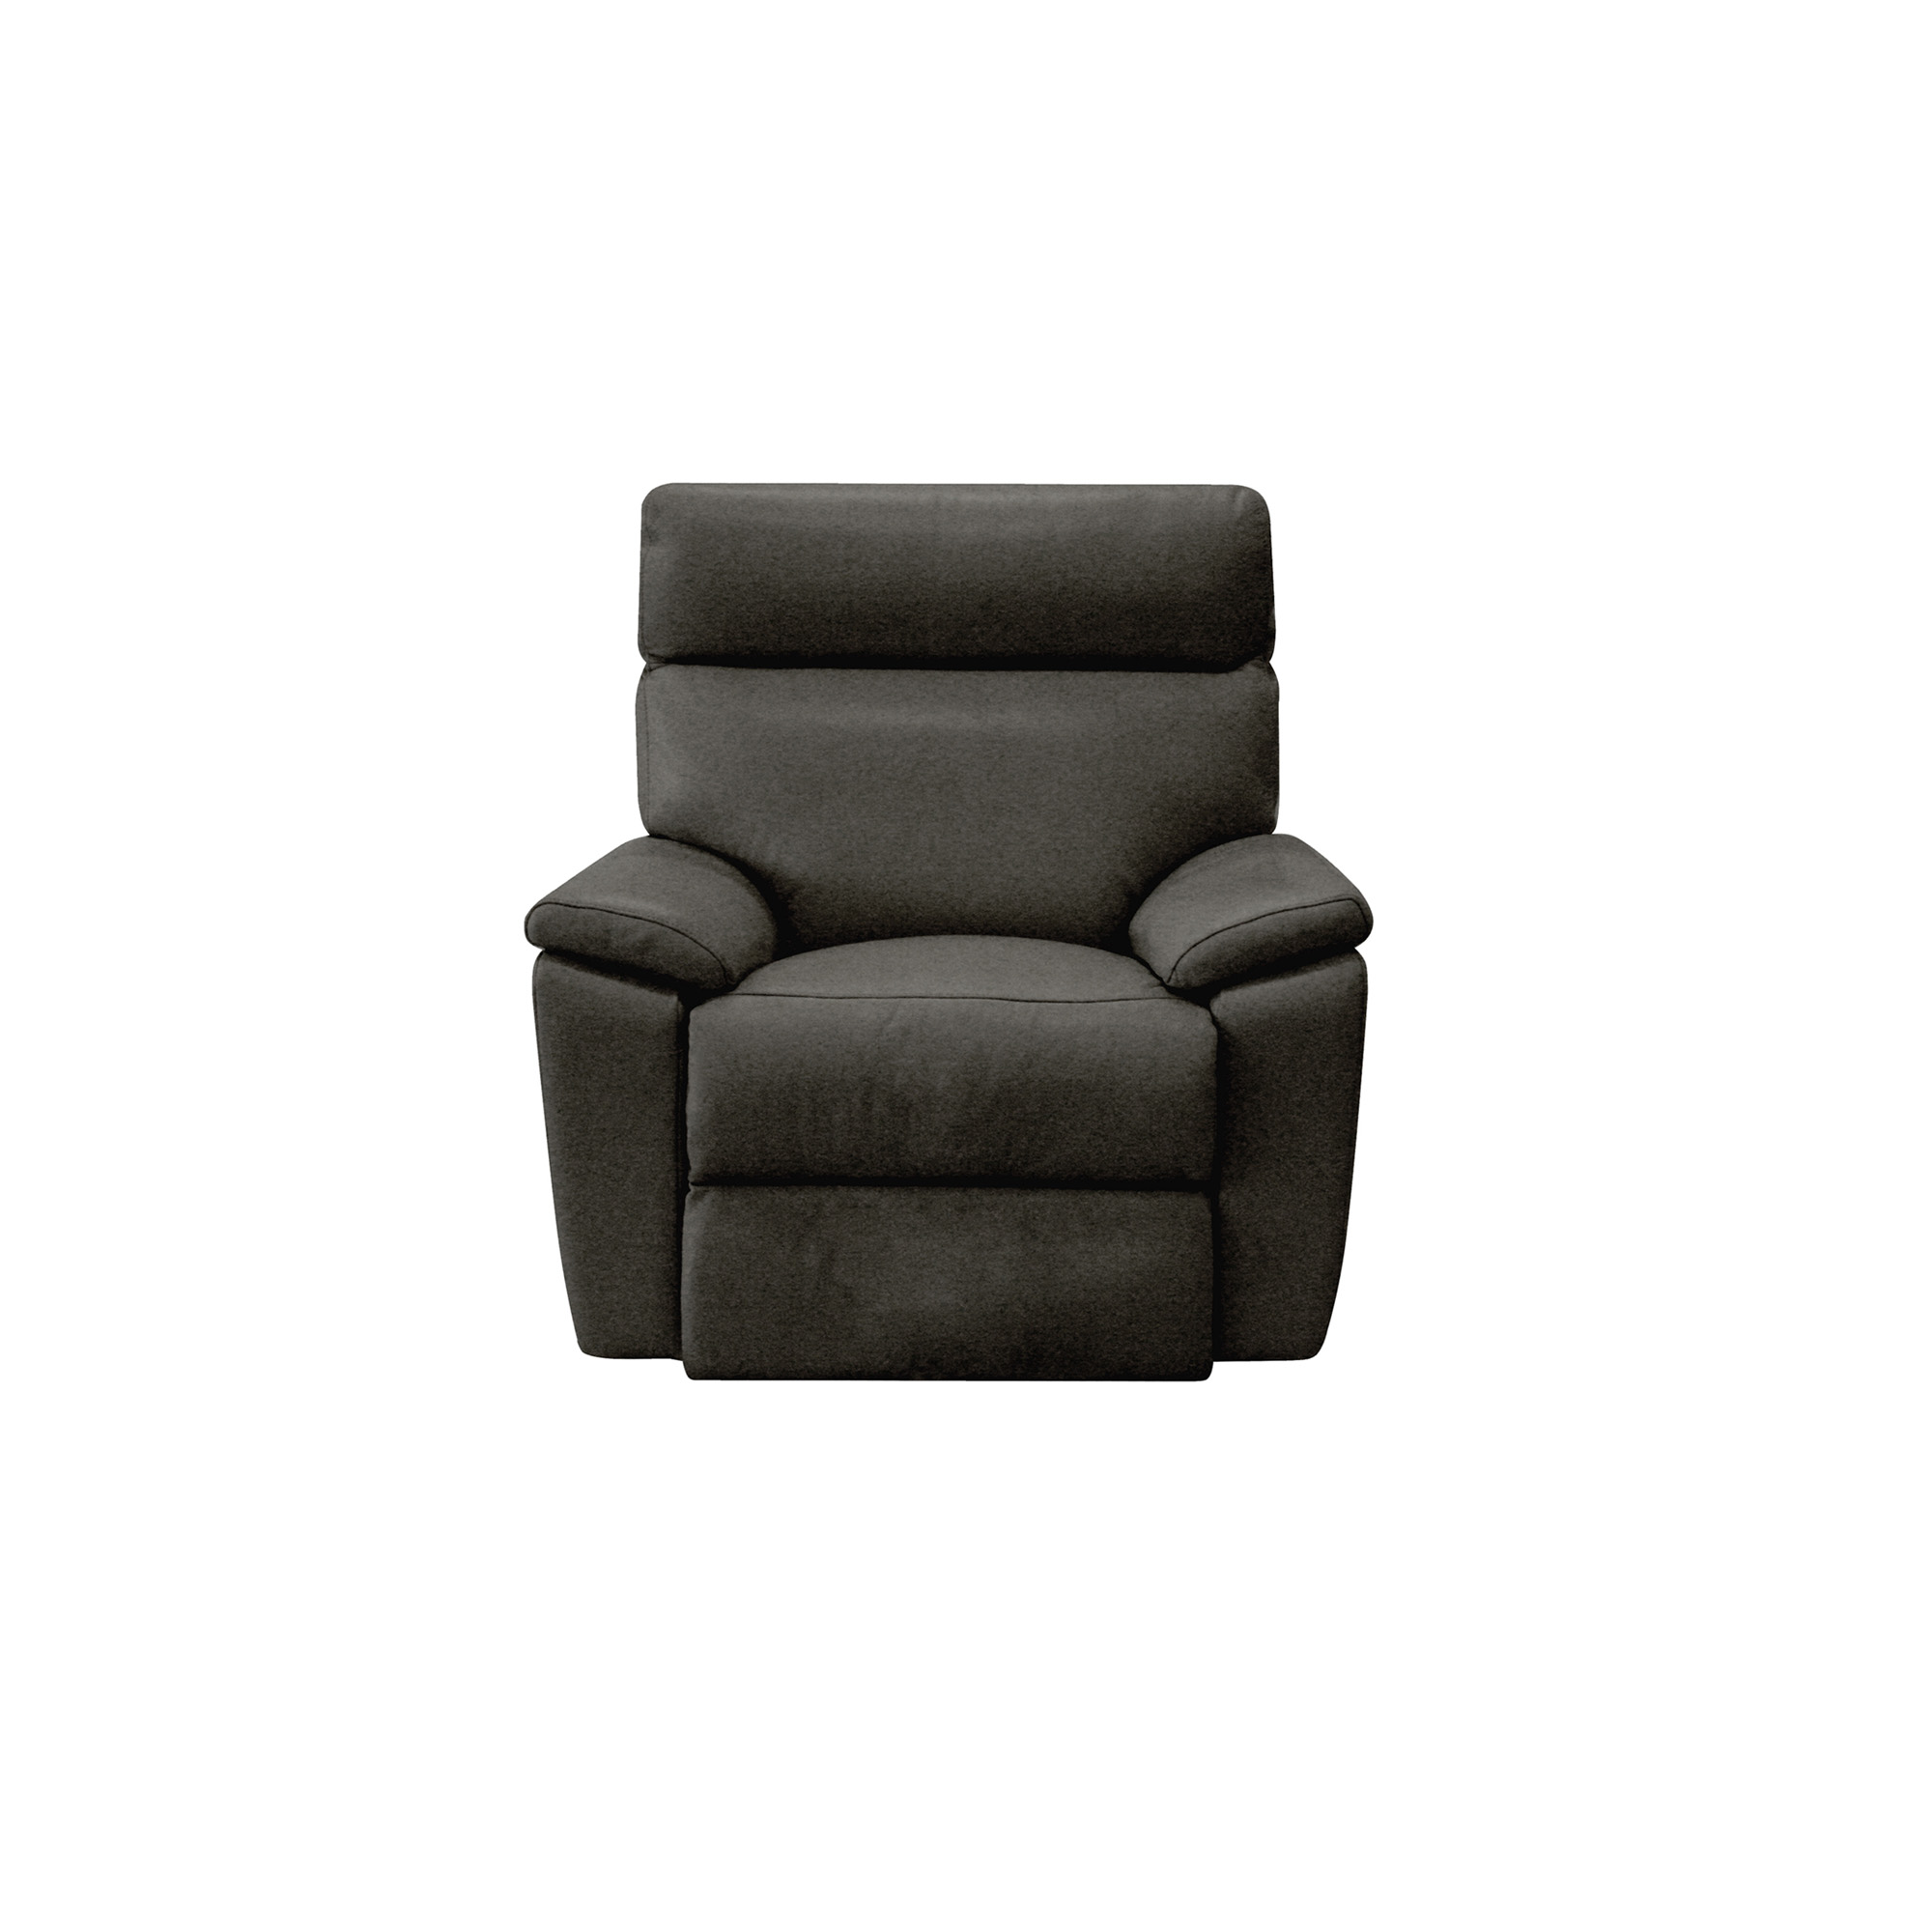 Leather Loveseat A Recliner Chair – Bedroom Recliner Chairs